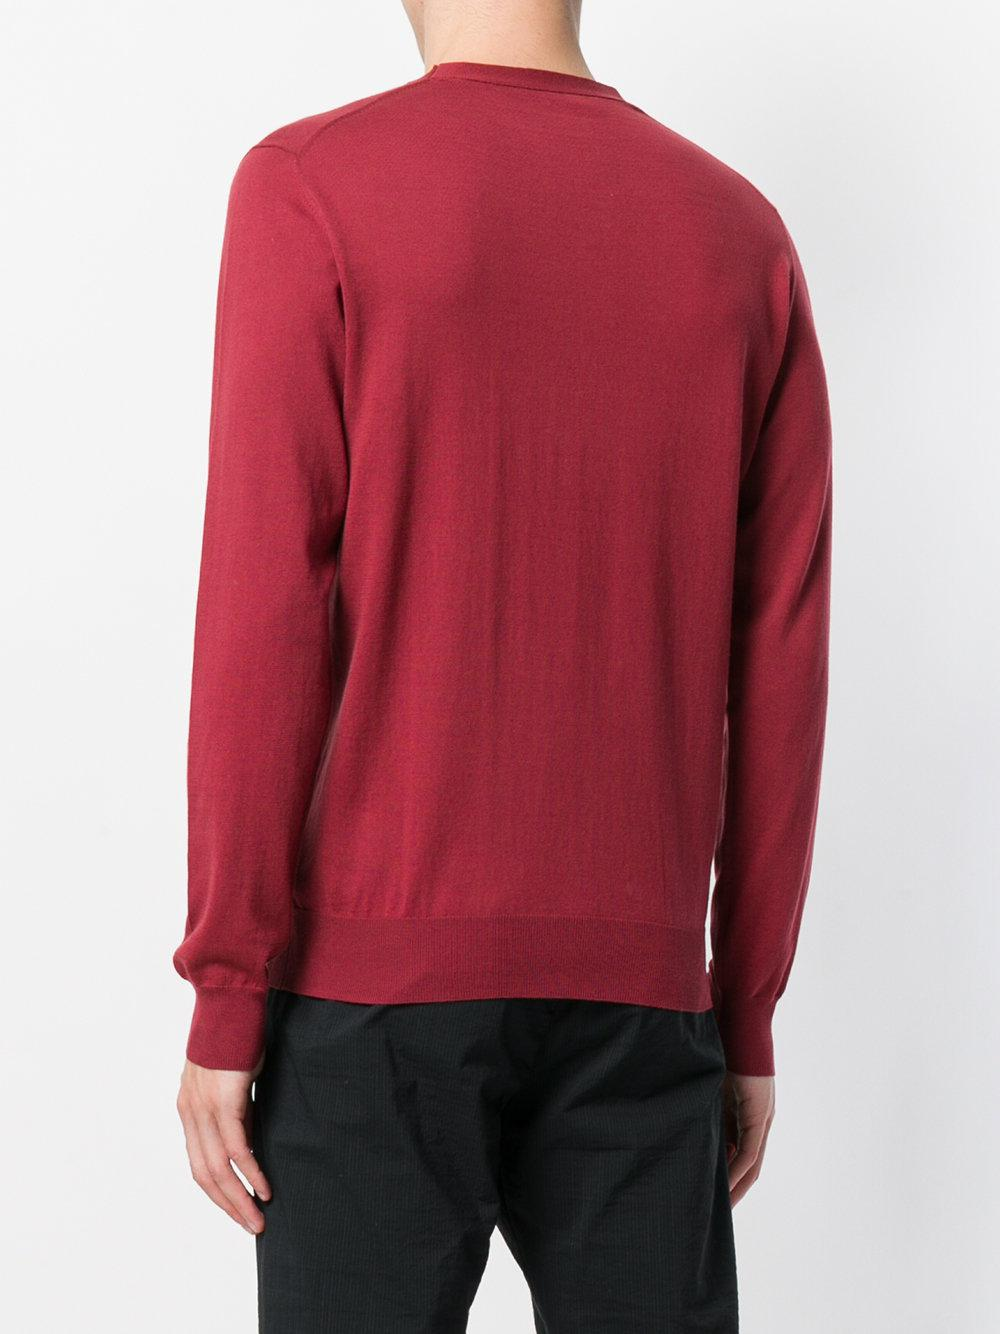 abd9acd043a5c Paolo Pecora - Red Crew Neck Sweater for Men - Lyst. View fullscreen